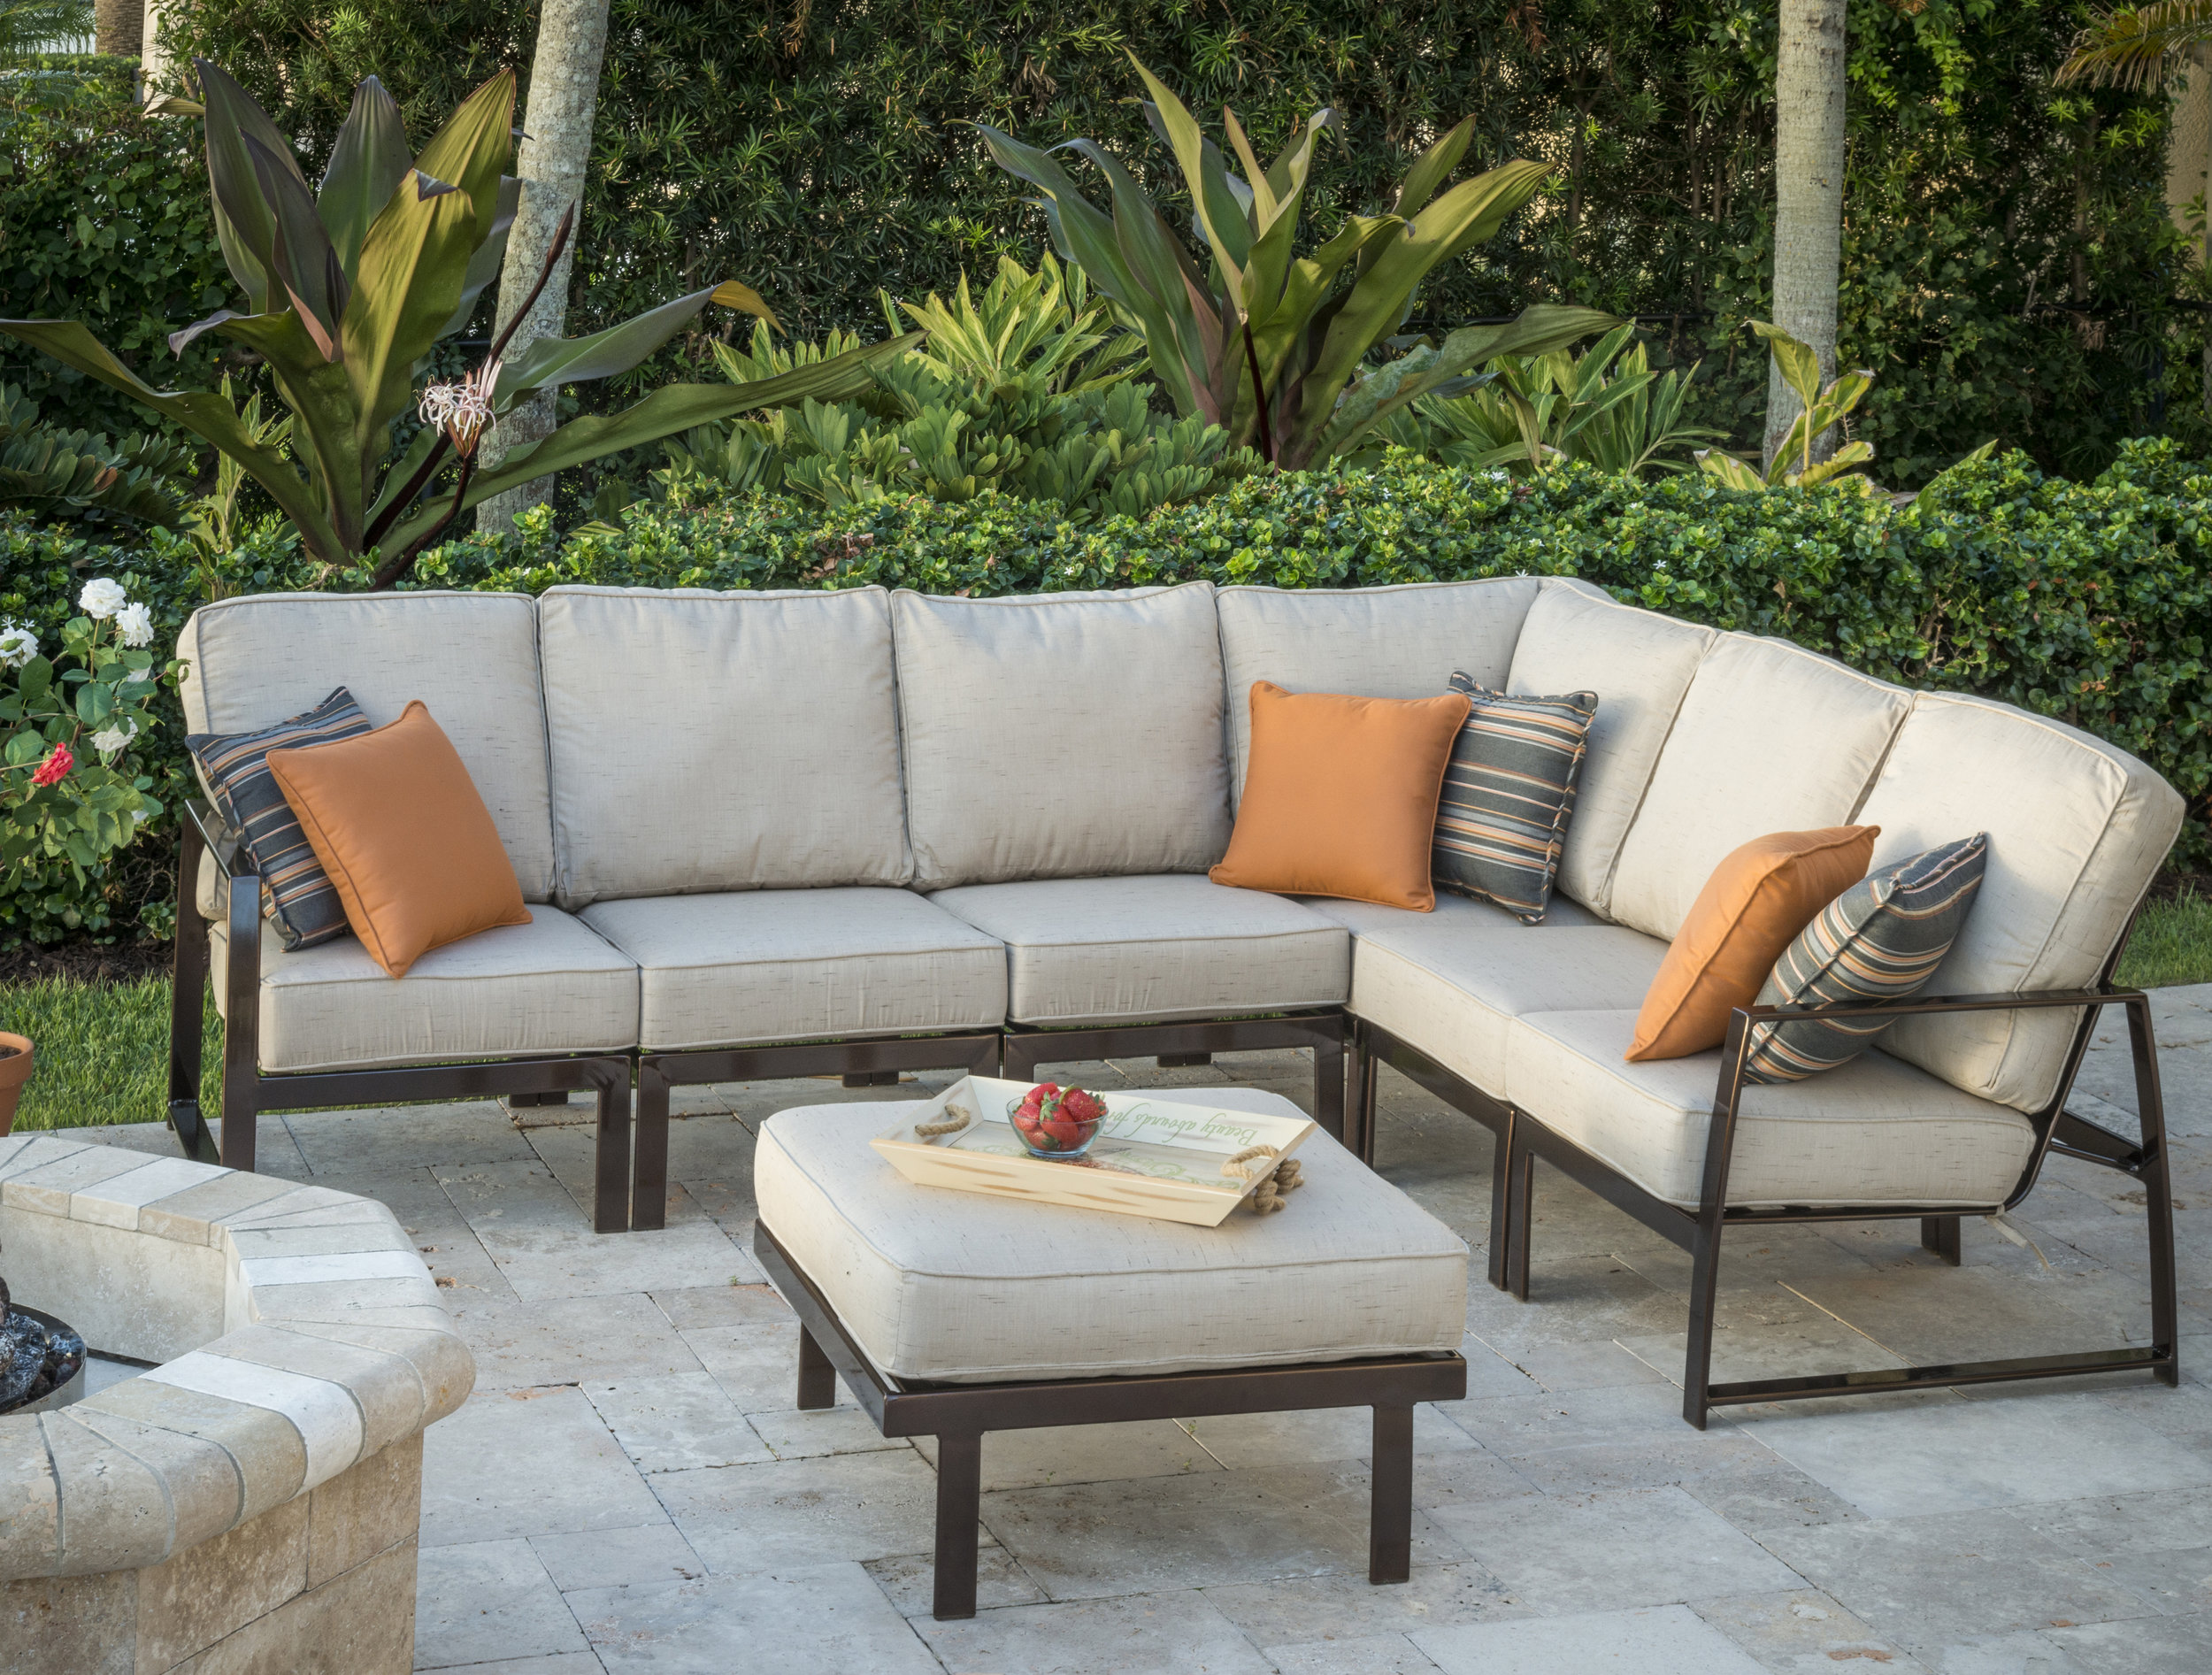 Krisp Modular Seating Collections makes great use of your outdoor space. Units can be configured in various arrangements to create your perfect outdoor area for entertaining or relaxing.